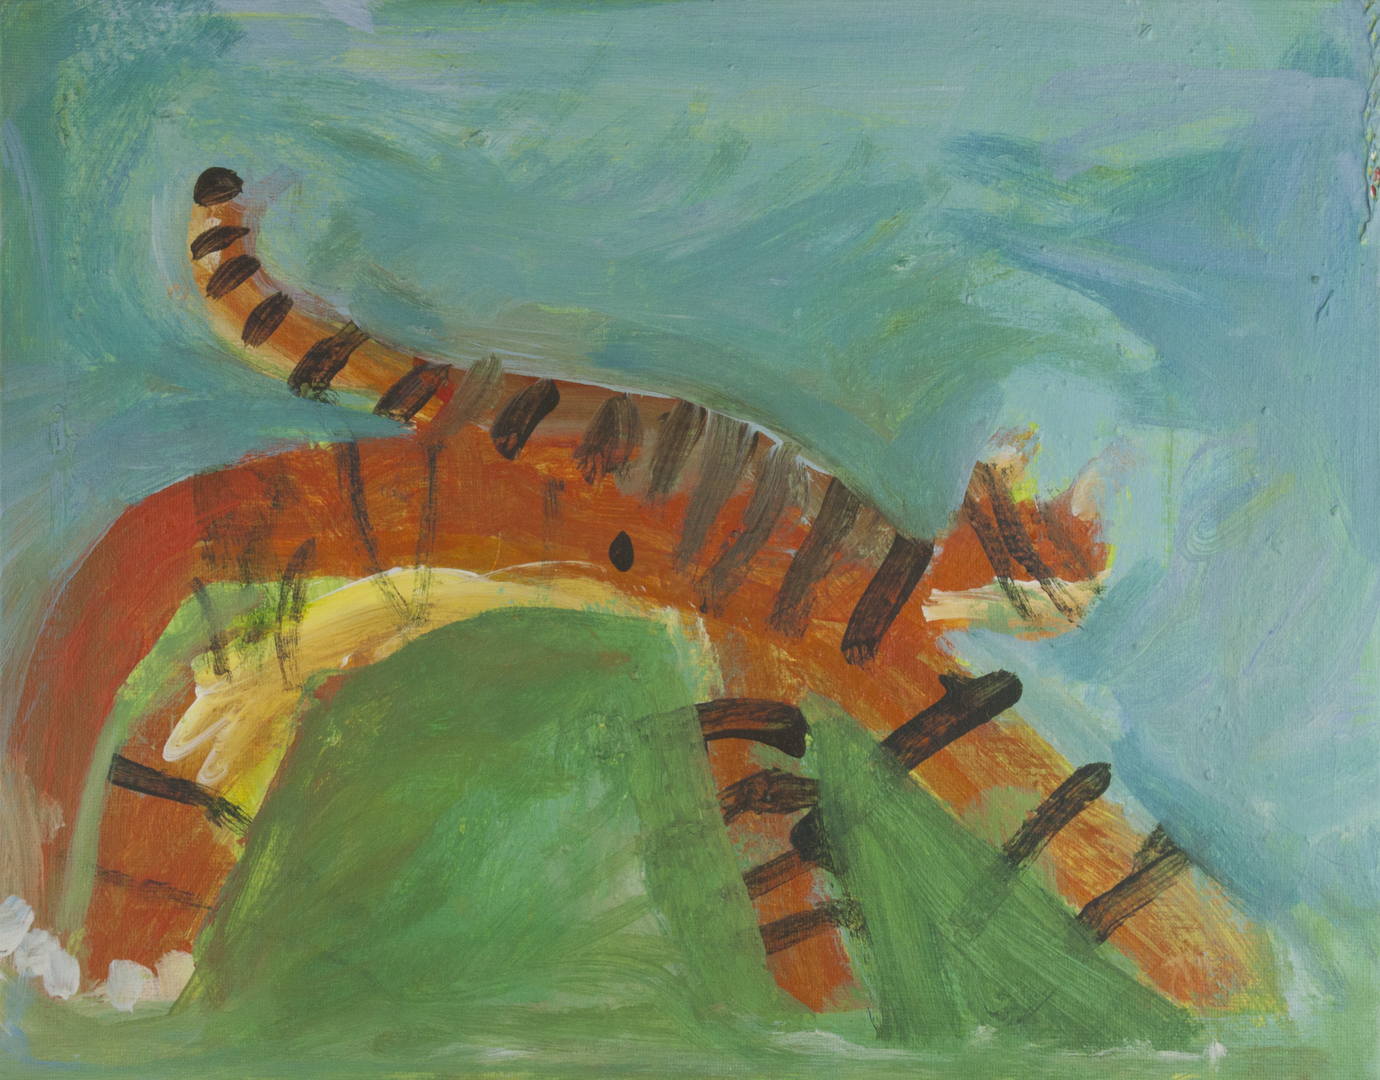 Hanneke_Sky_Tiger Cat_Acrylic on canvas panel_14 x 11..png